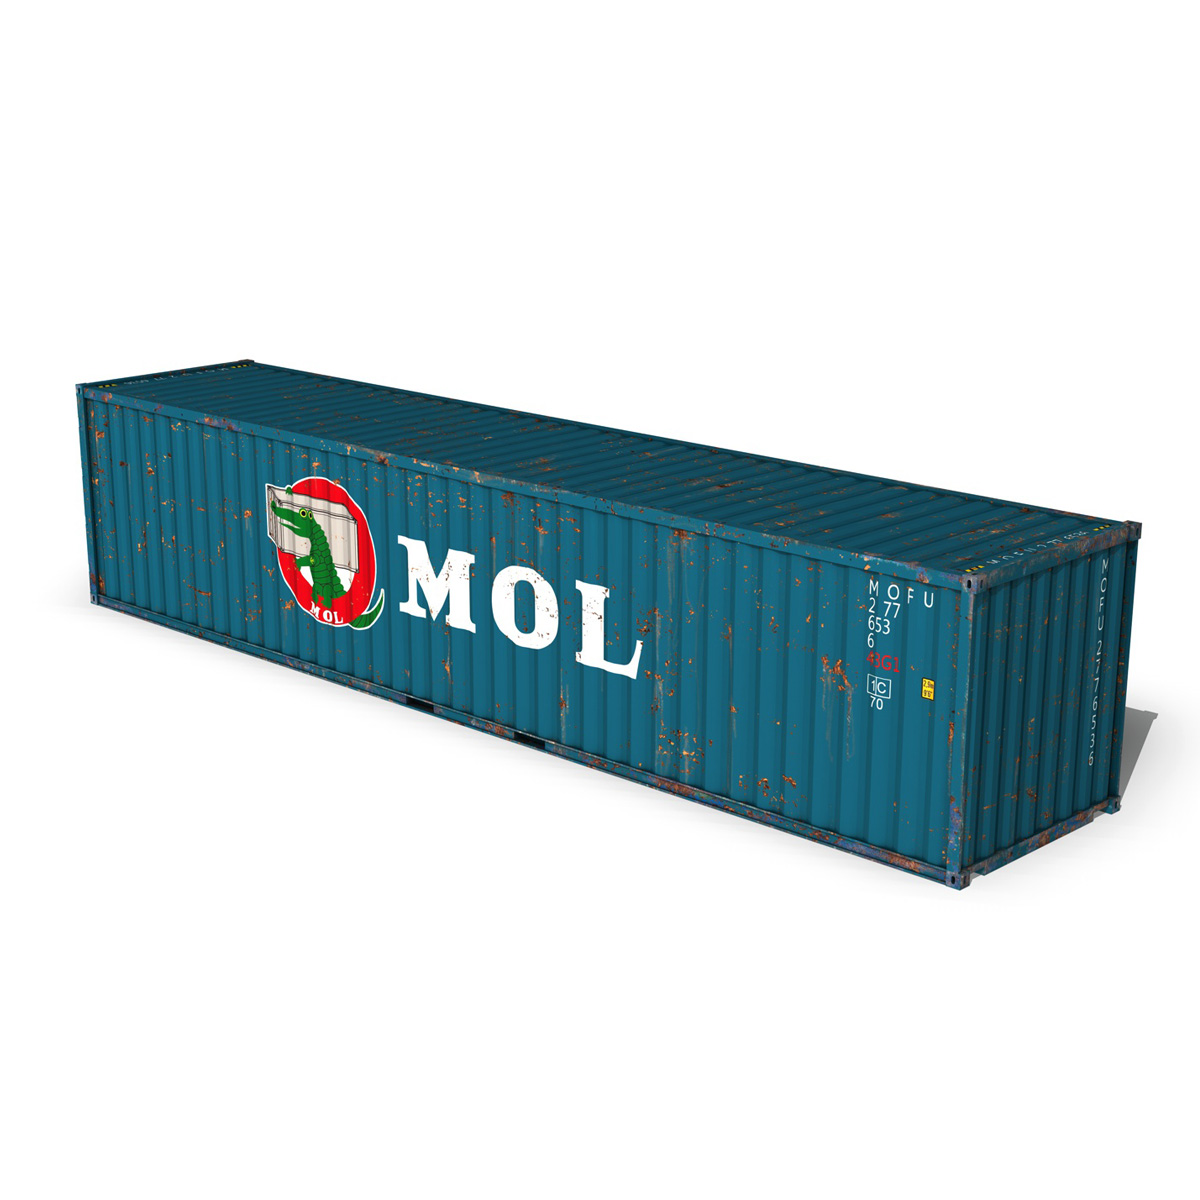 40ft shipping container – mol 3d model 3ds fbx lwo lw lws obj c4d 265136